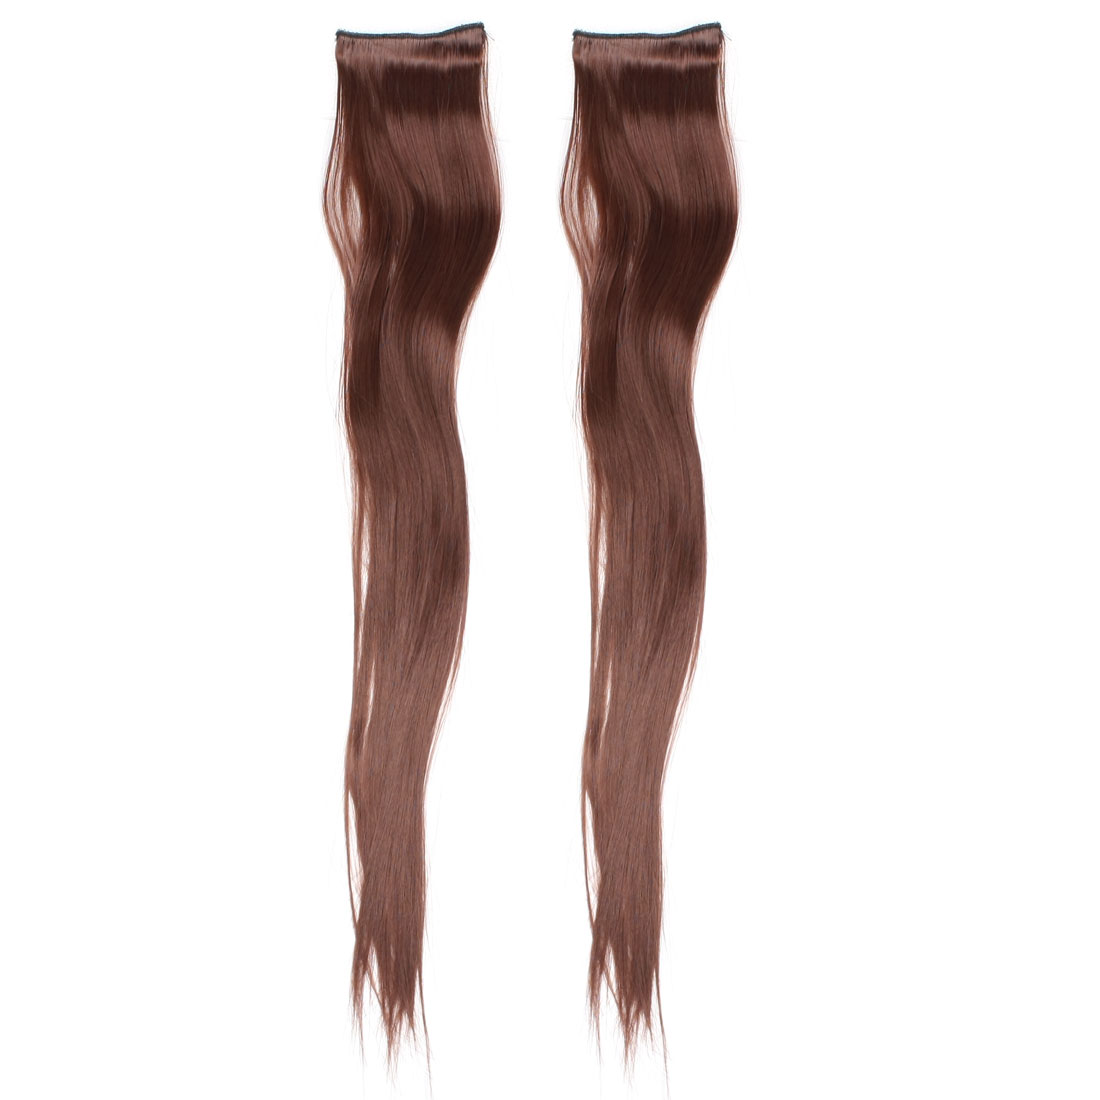 "2 Pcs 23"" Headdress Long Straight DIY Ponytail Deep Brown Wig for Lady"